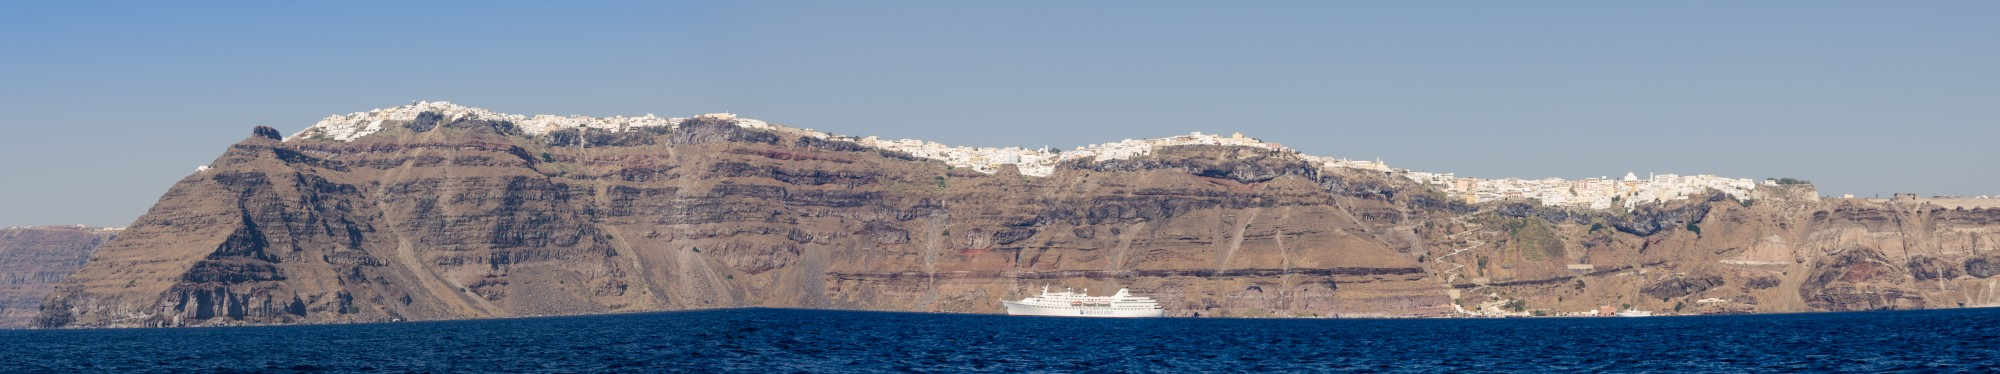 Caldera with crater rim and the towns Imerovigli Firostefani Fira - Santorini - Greece